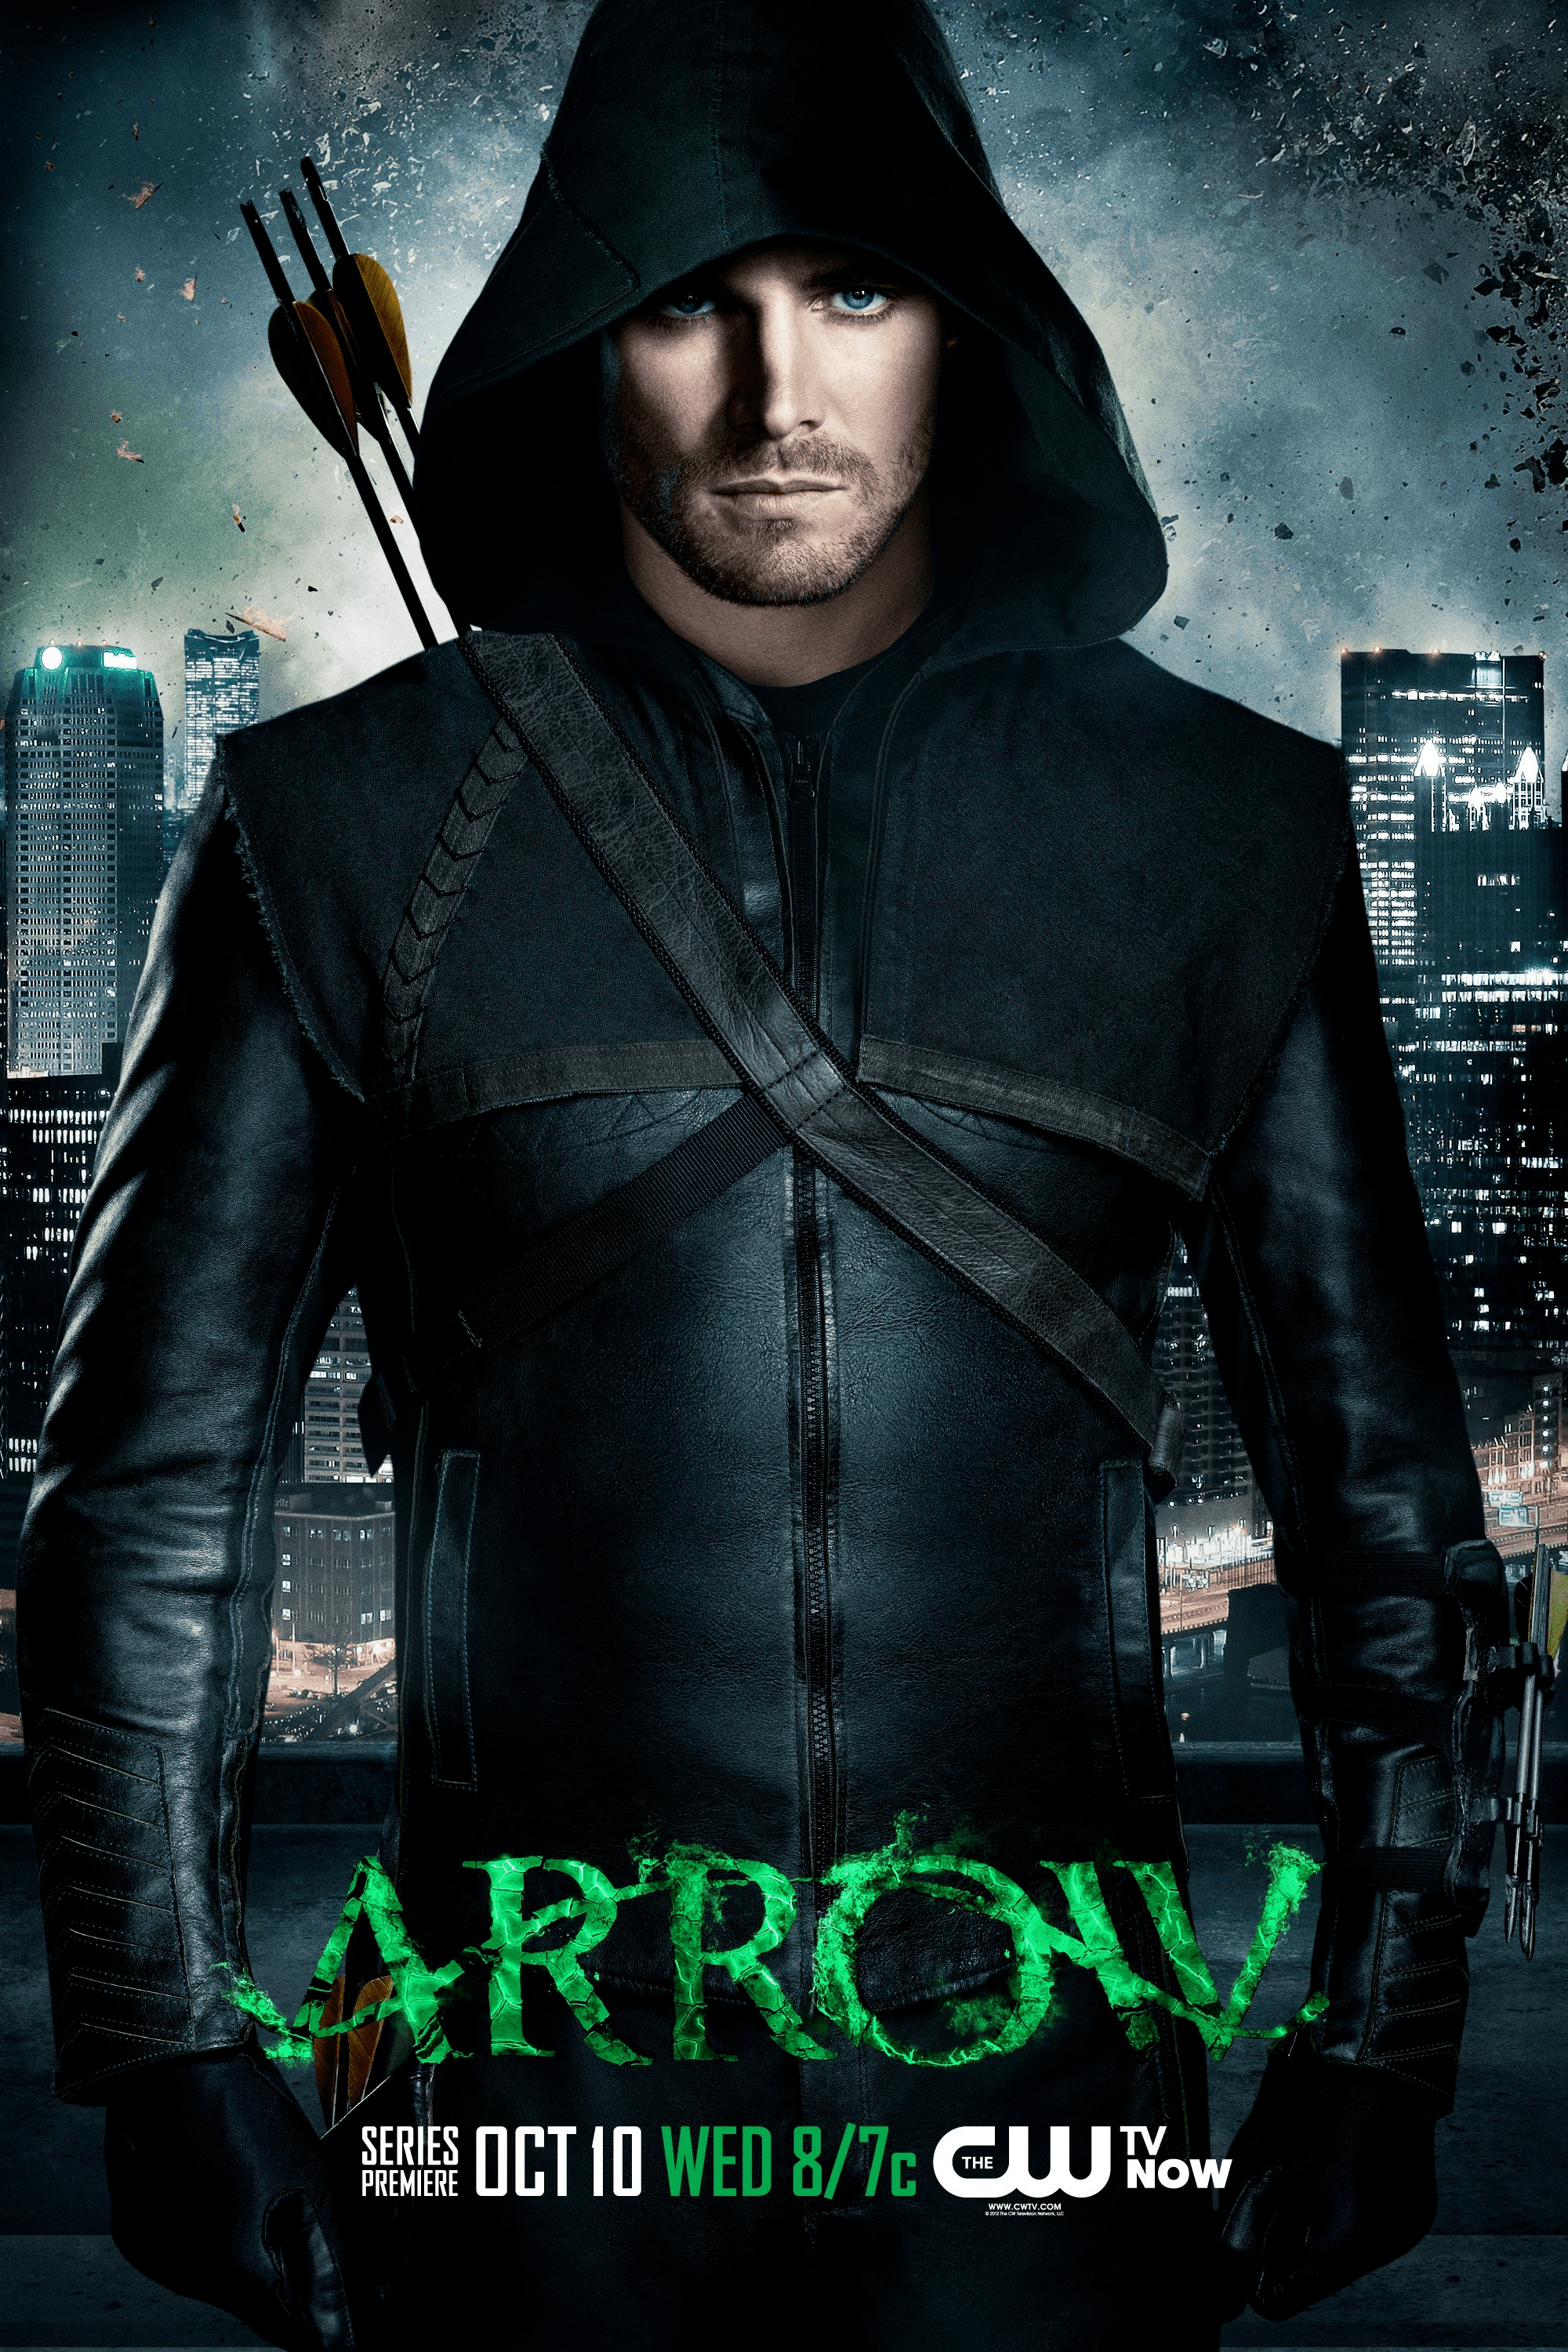 http://img2.wikia.nocookie.net/__cb20130209042226/arrow/images/0/06/Arrow_dark_promo.png